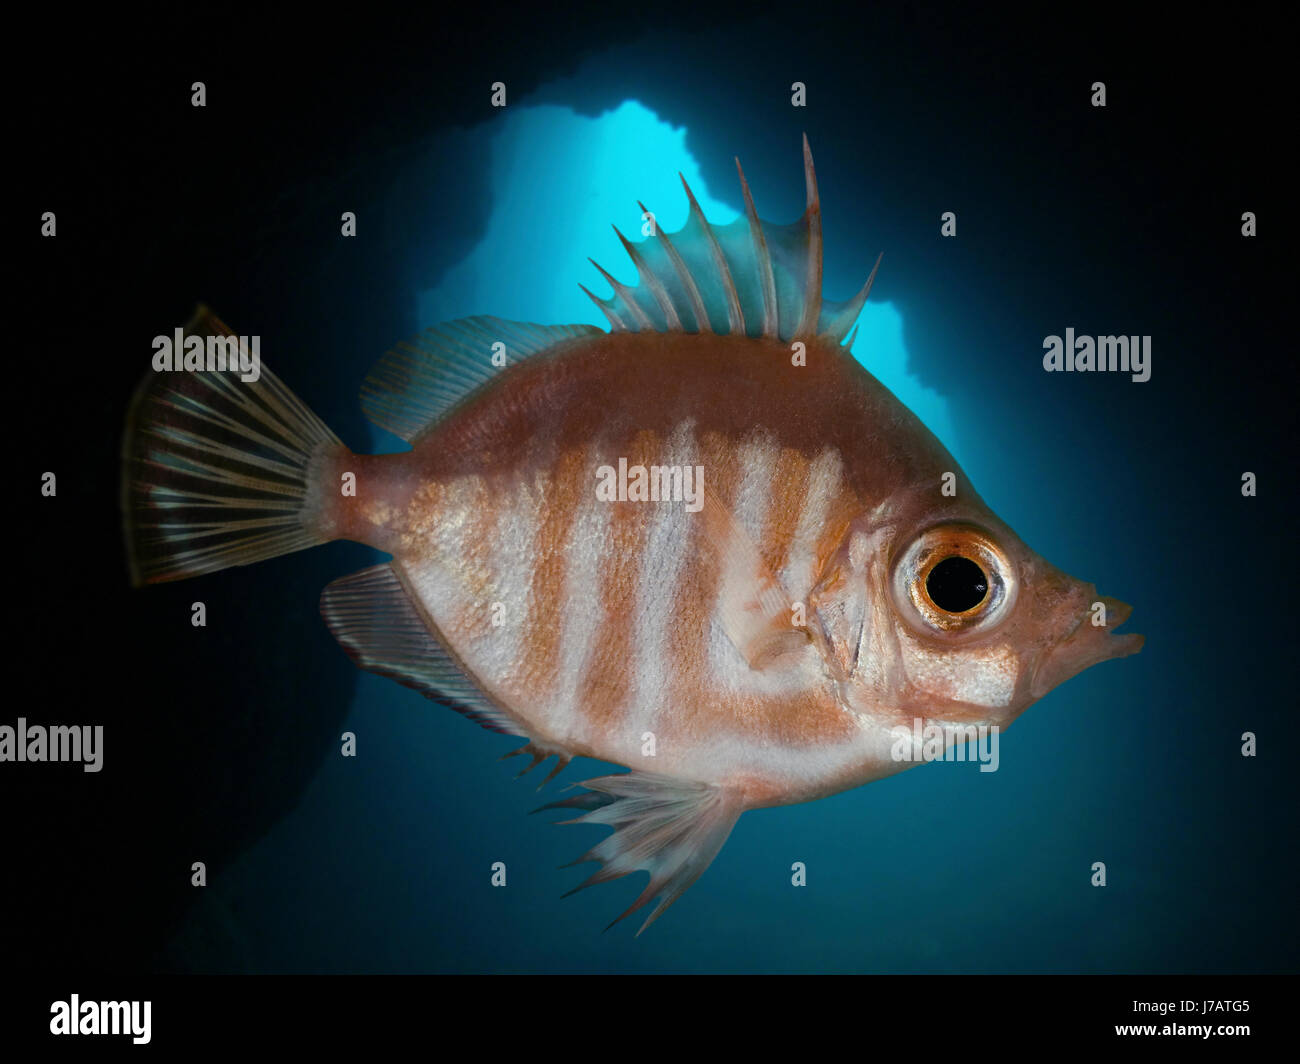 Boarfish, Capros aper. Lateral view insiode underwater cave. Portugal. Stock Photo